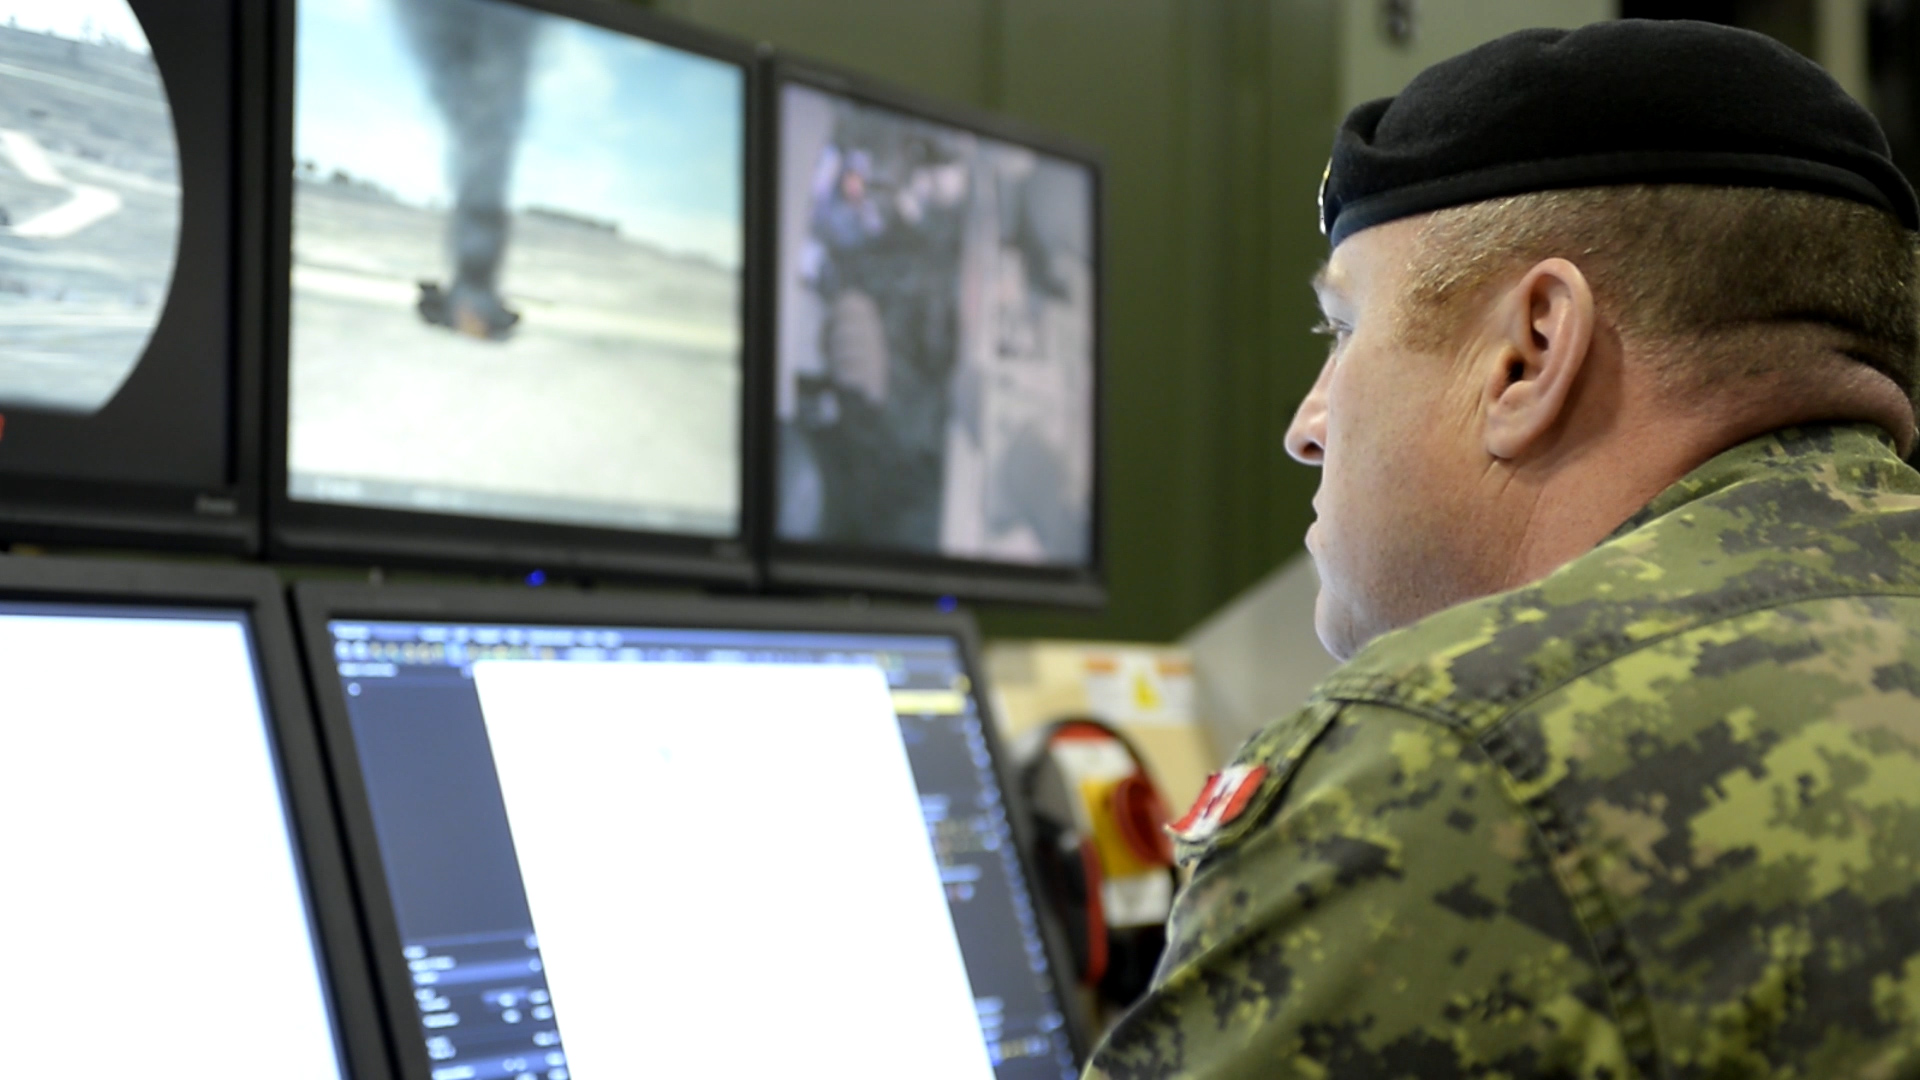 An instructor monitors soldiers operating stationary Leopard-2 tank simulators at the Combat Training Centre, part of the Canadian Army Doctrine and Training Centre in Gagetown, New Brunswick in March, 2015. Photo by: Combat Training Centre